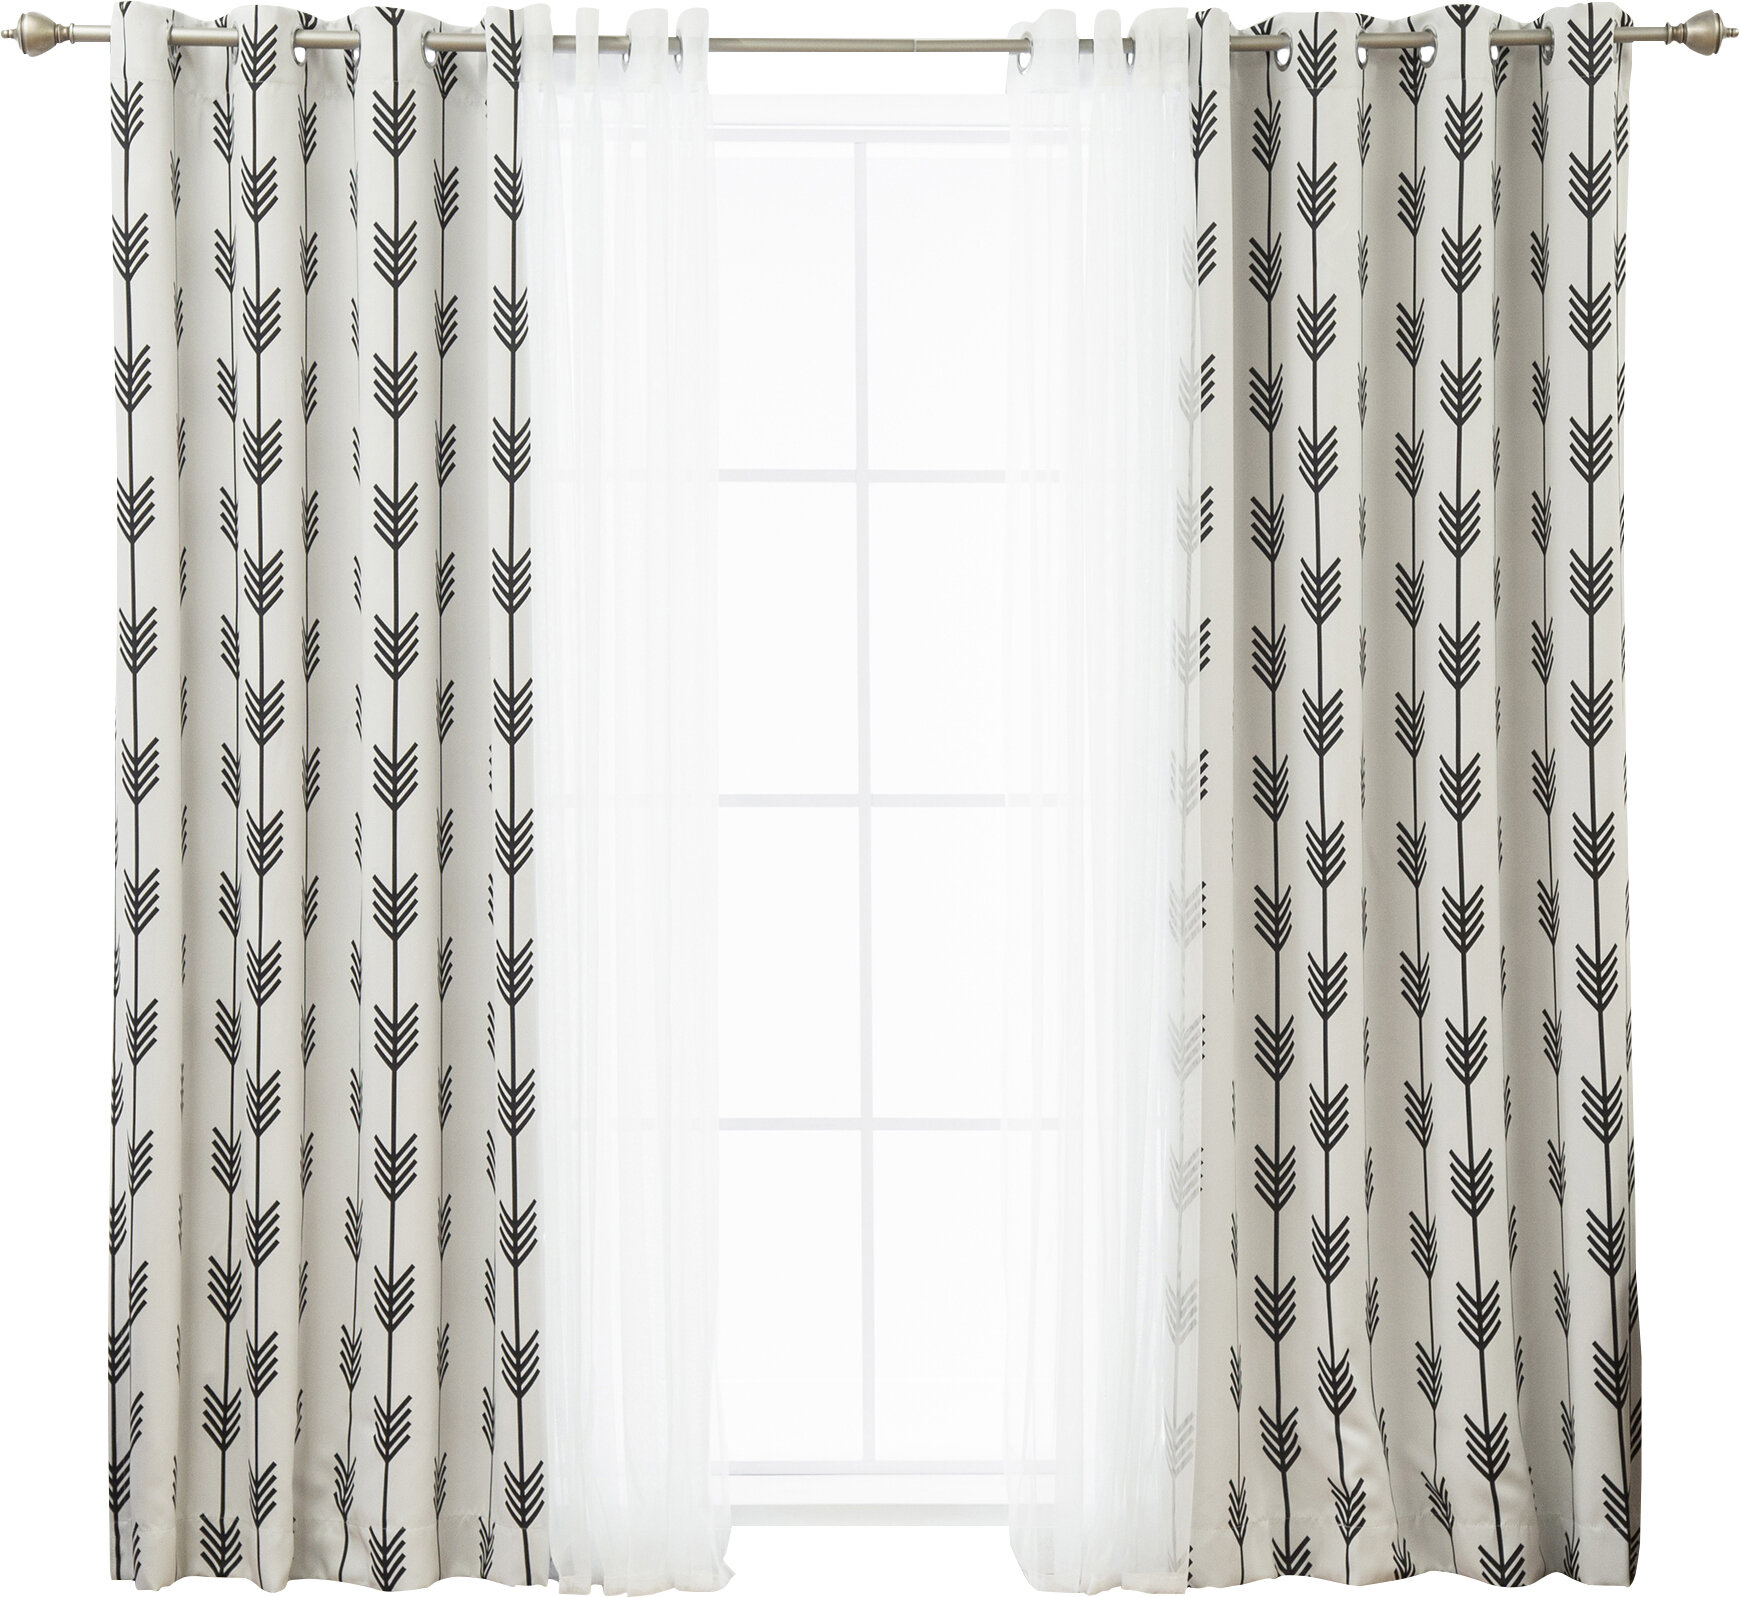 Whitlam Room Darkening Thermal Grommet Panel Pair For Ocean Striped Window Curtain Panel Pairs With Grommet Top (View 20 of 20)